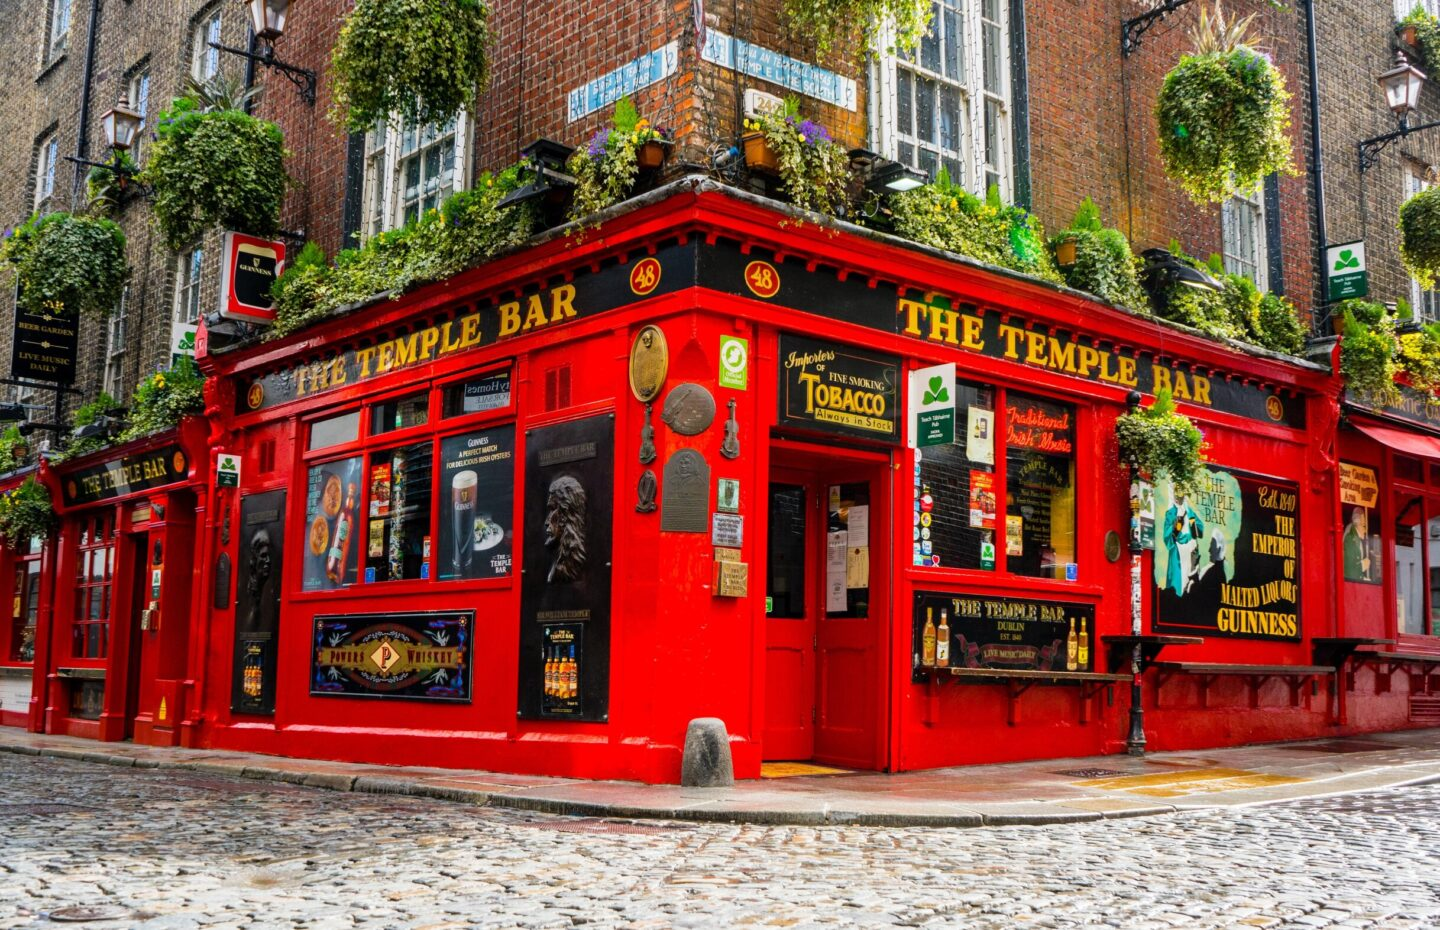 5 Things I'd Do On A Trip To Dublin